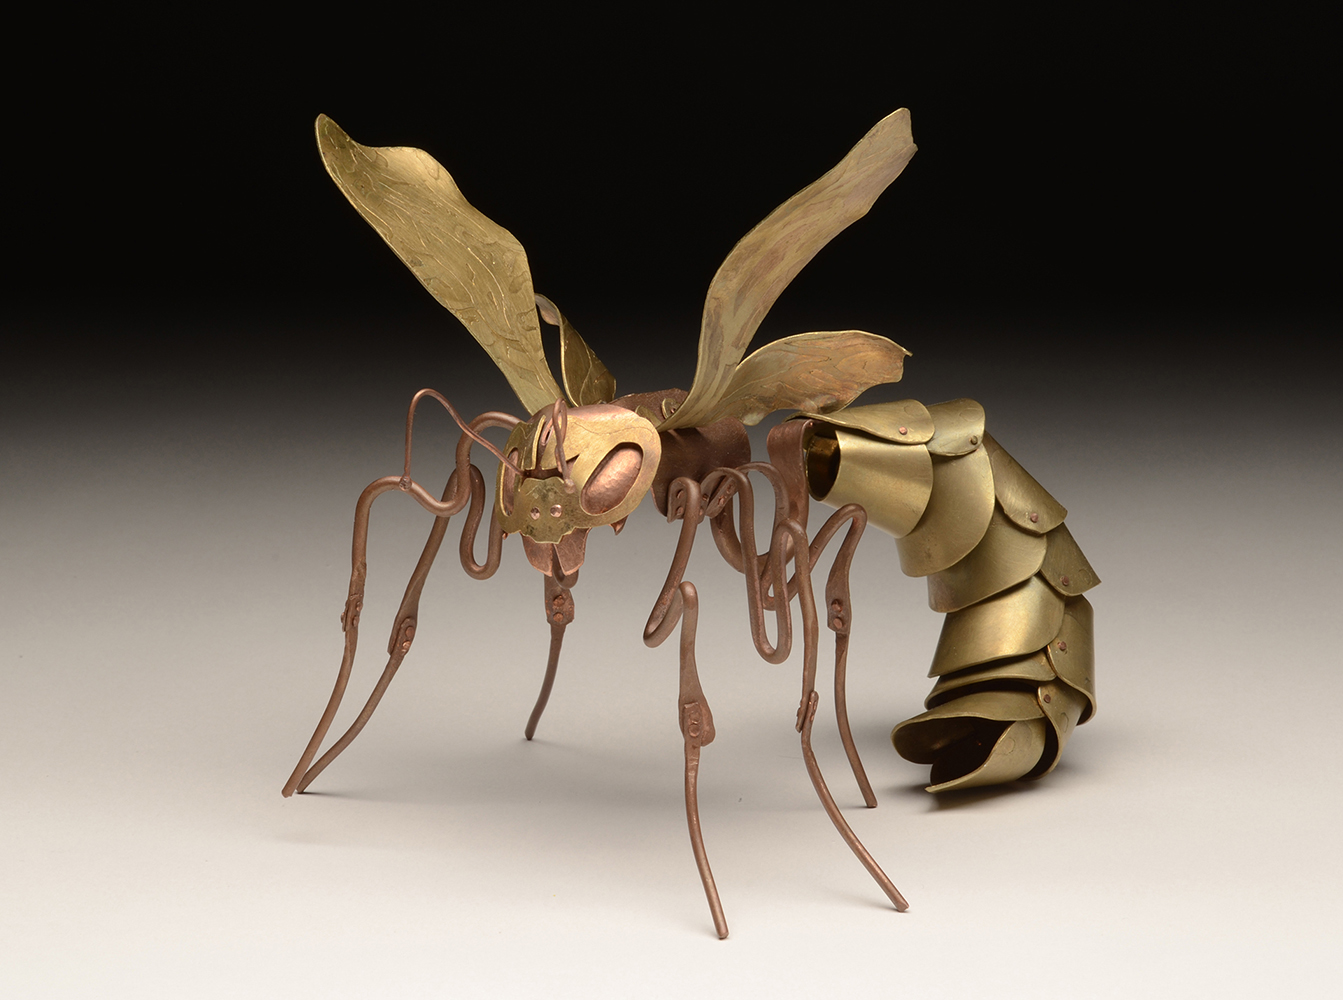 metal sculpture of a wasp